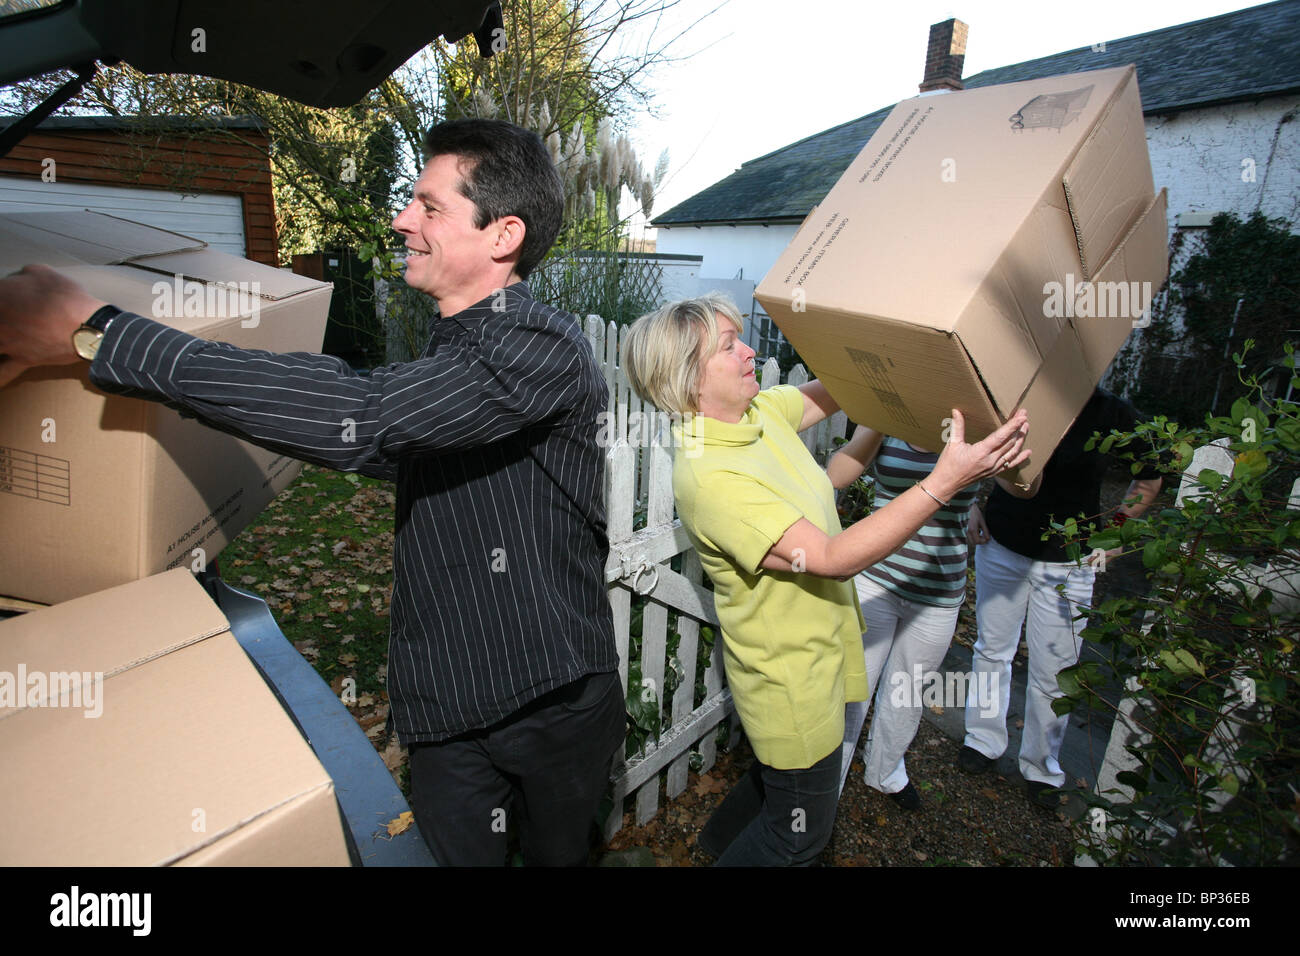 Image shows a family moving house, loading boxes into their car. Photo:Jeff Gilbert - Stock Image